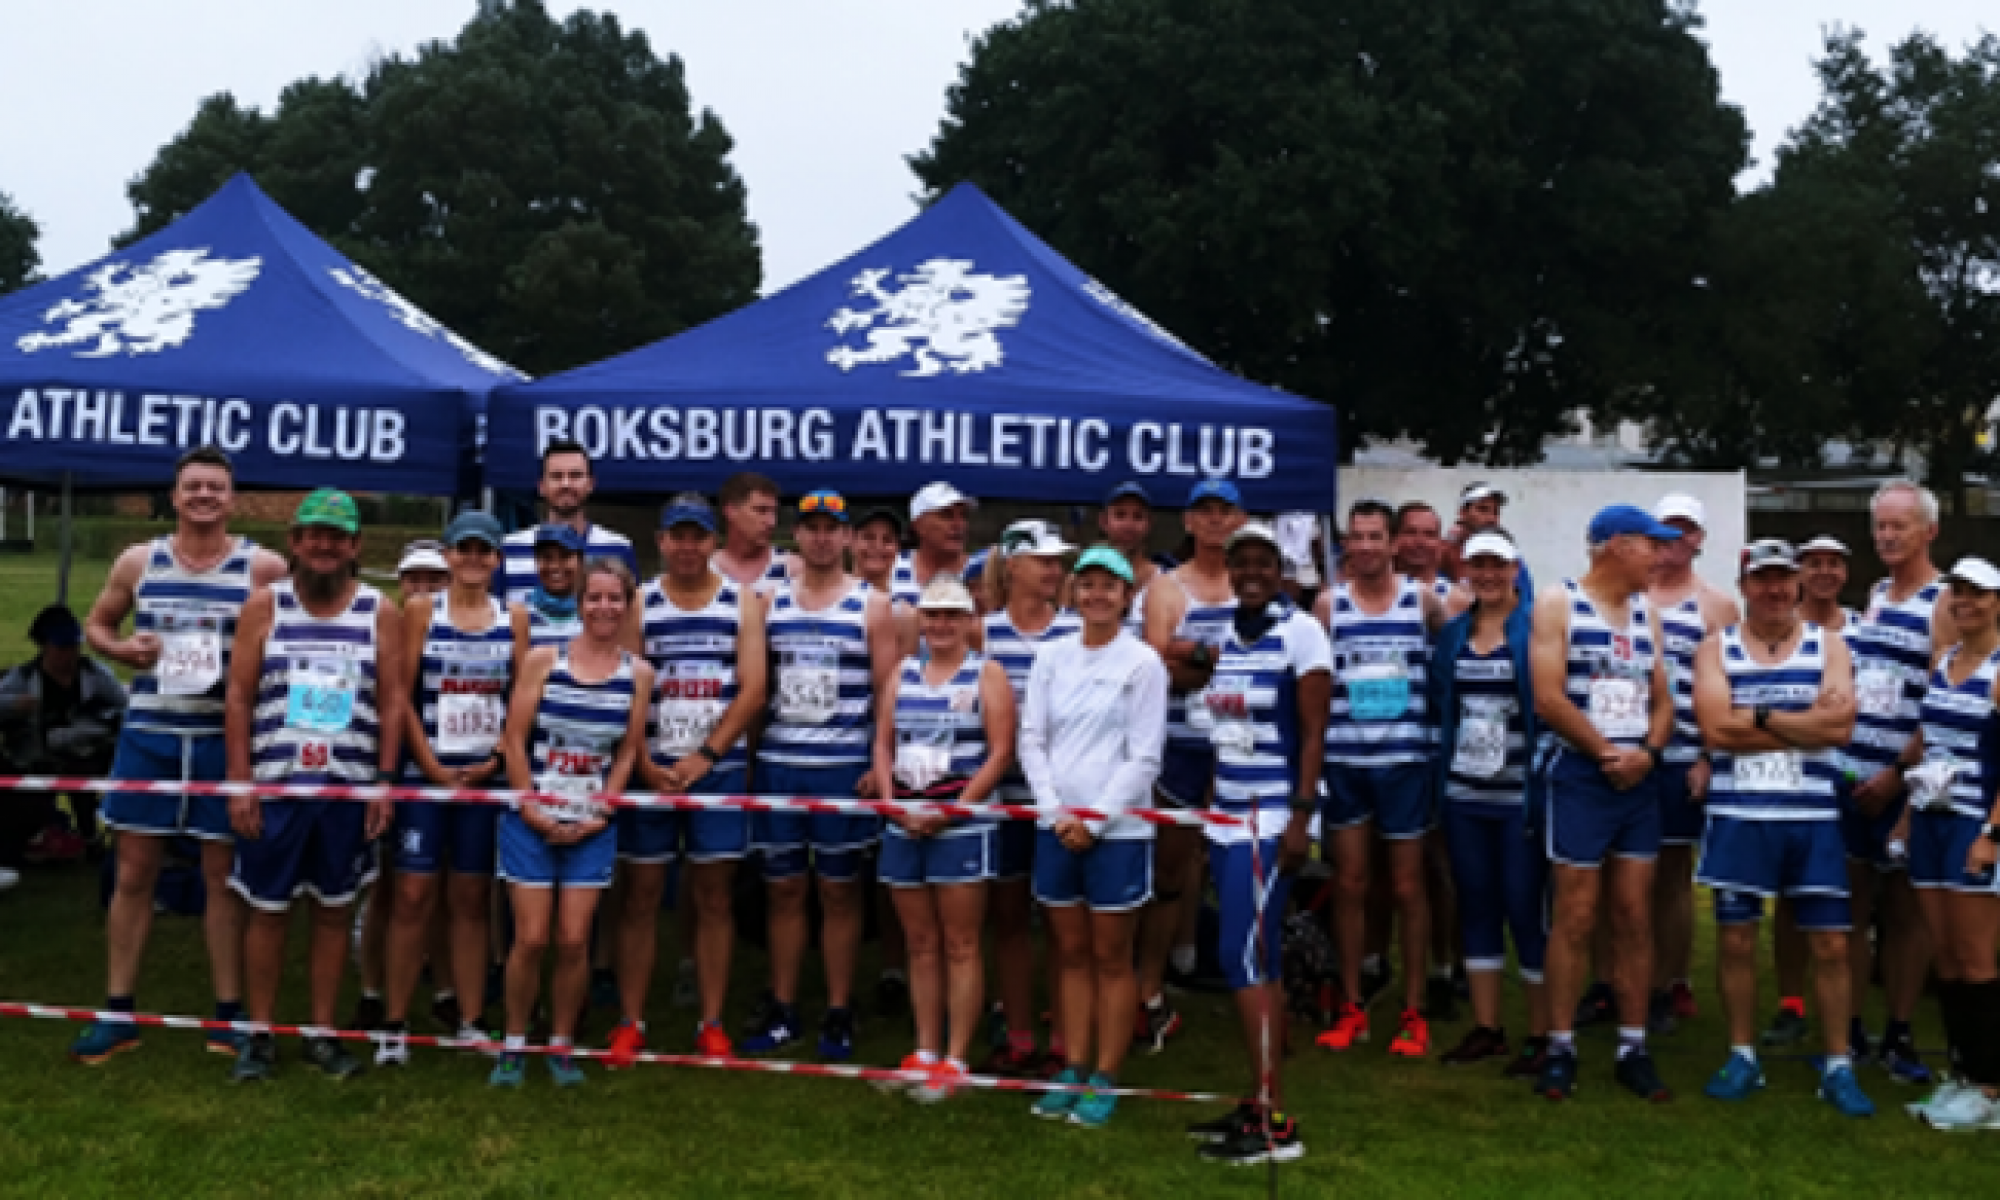 Boksburg Athletic Club